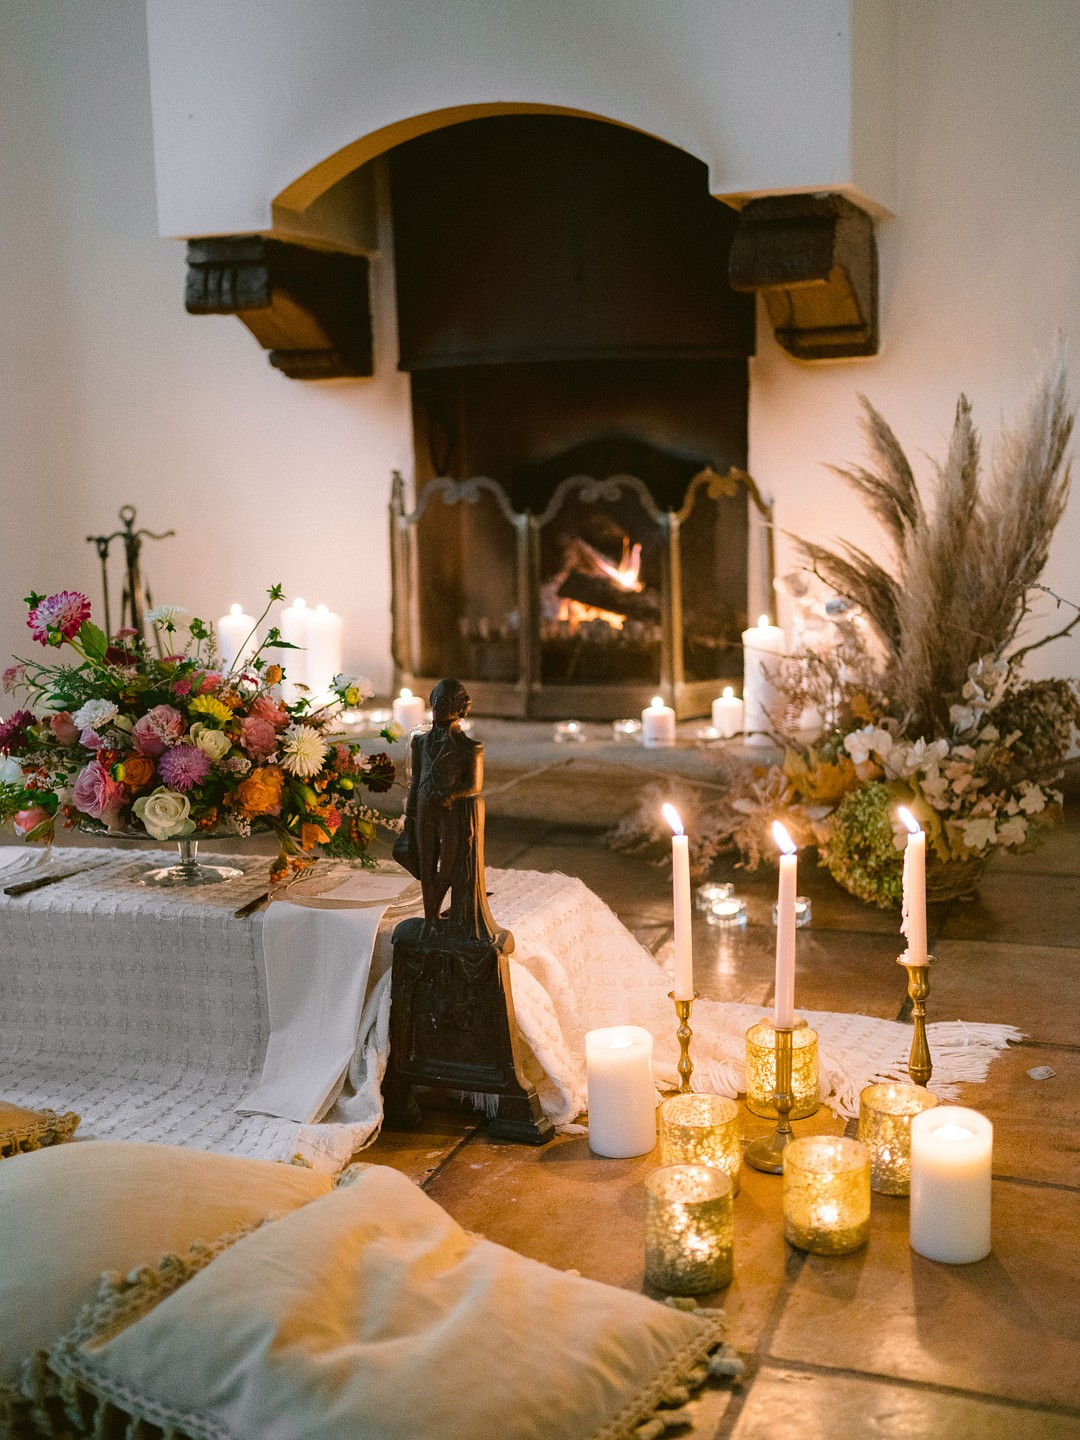 cozy fireplace setup for bride and groom